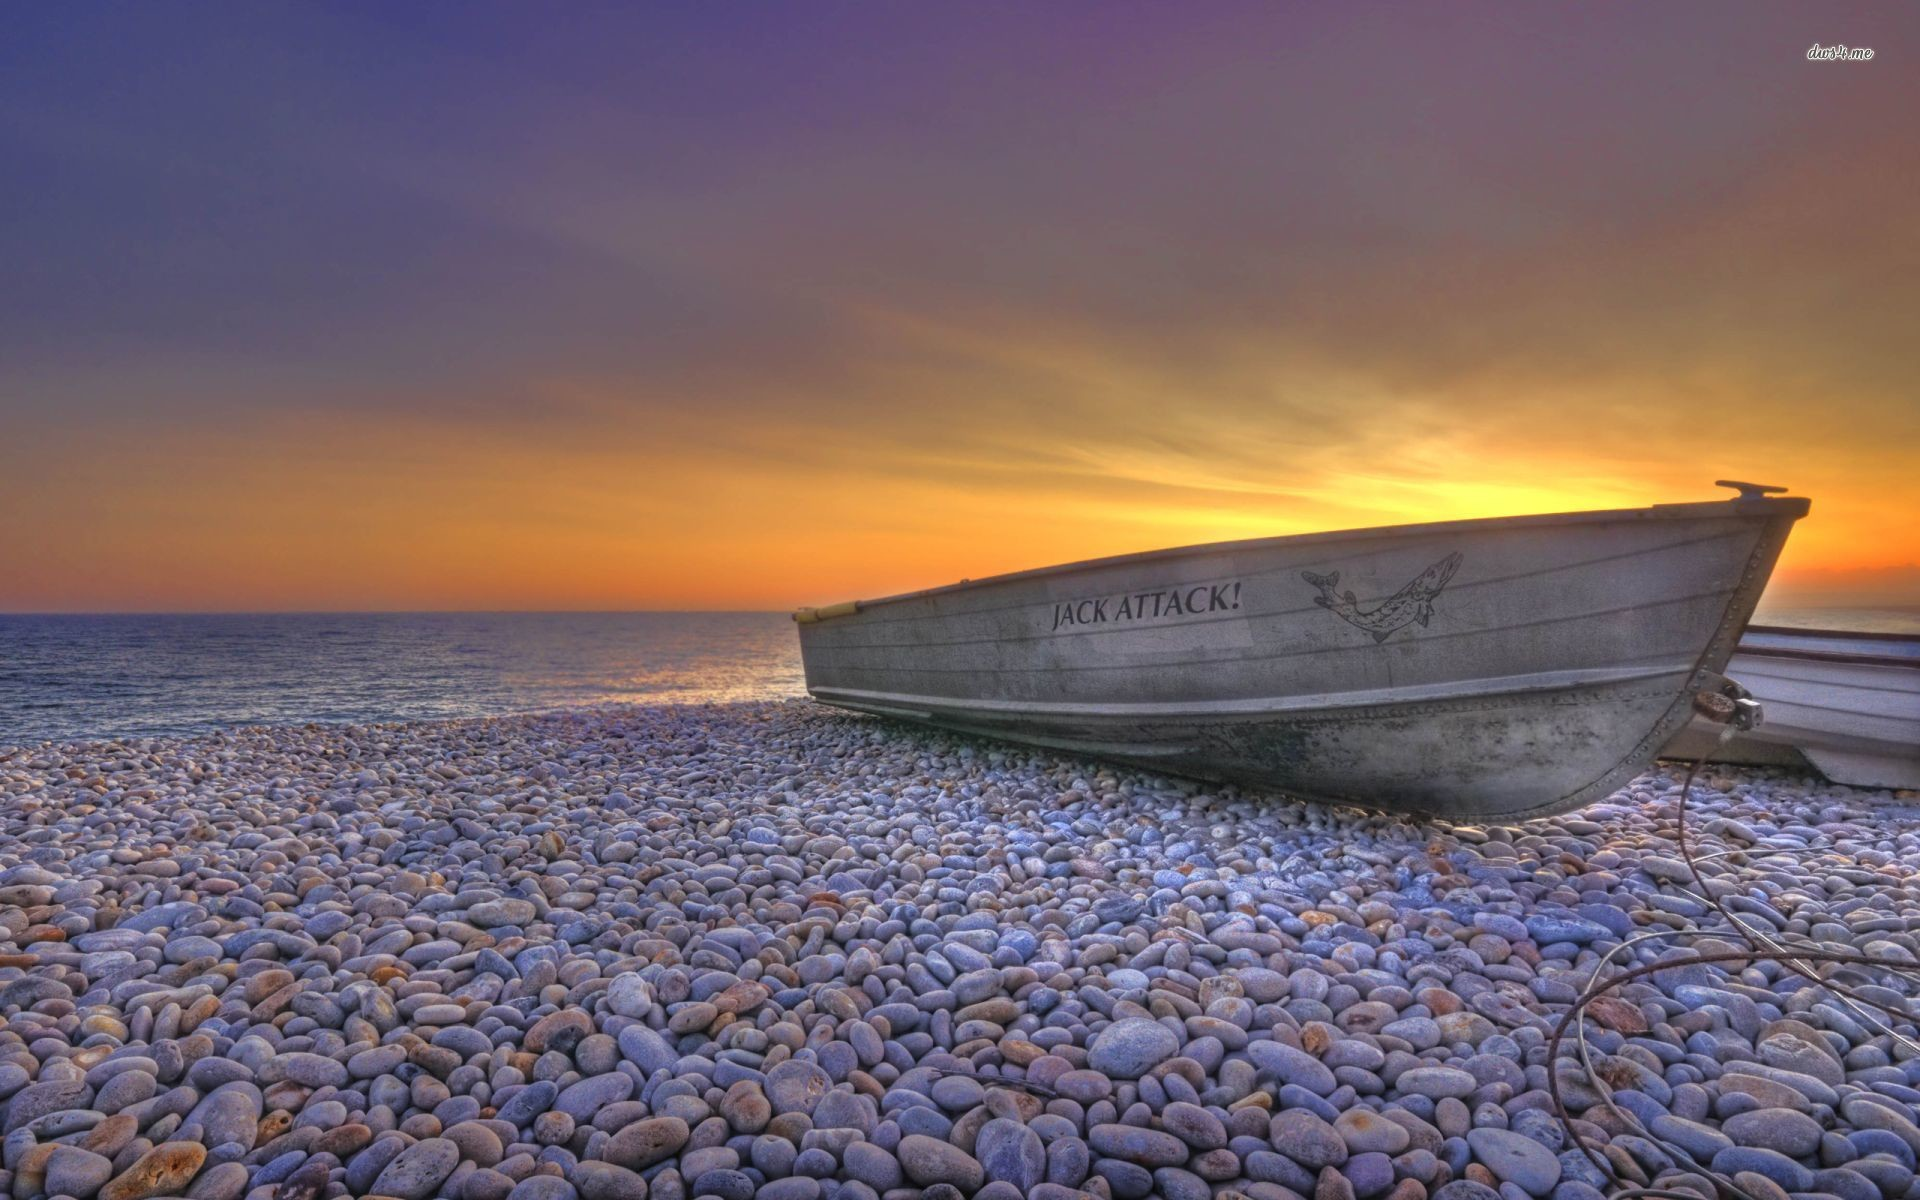 Res: 1920x1200, ... Boat on a pebble beach at sunset wallpaper  ...